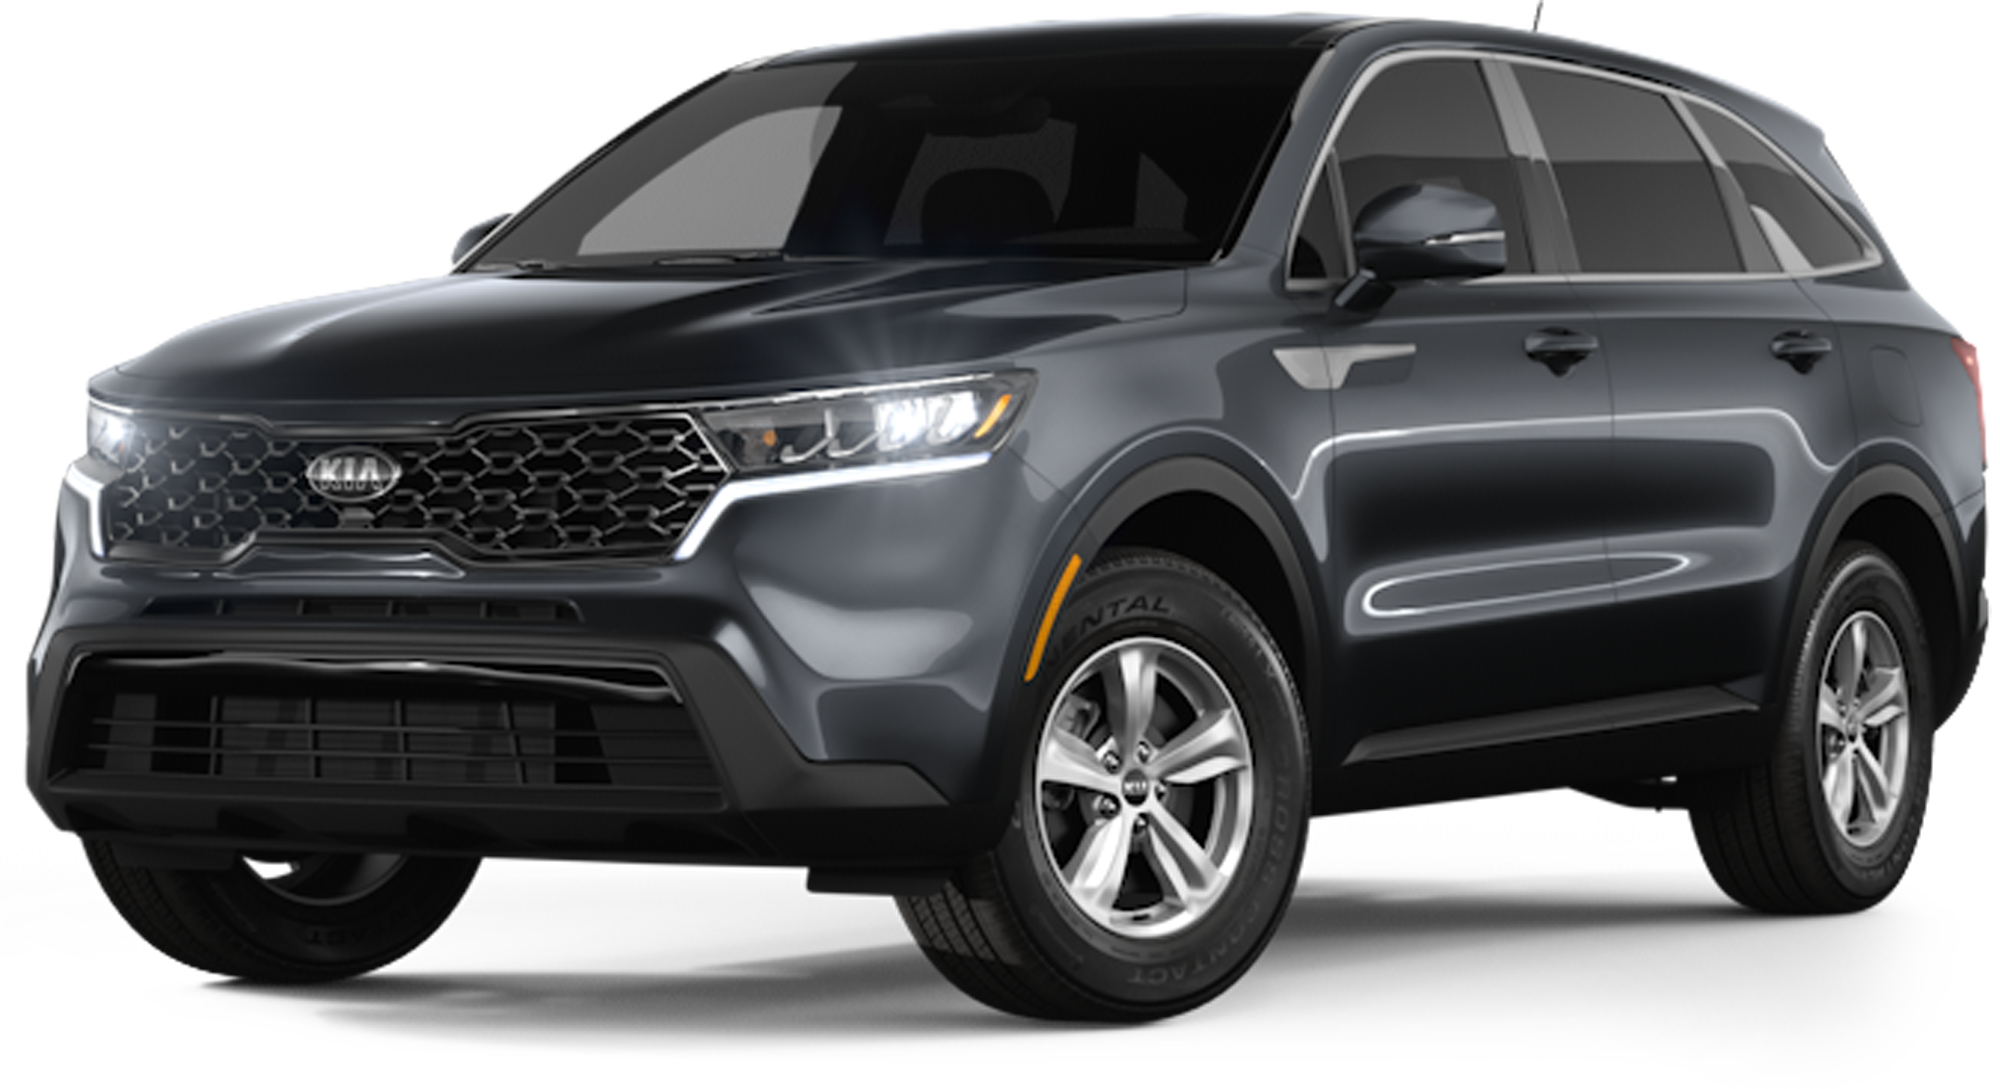 2021 Kia Sorento Incentives, Specials & Offers in Yonkers NY